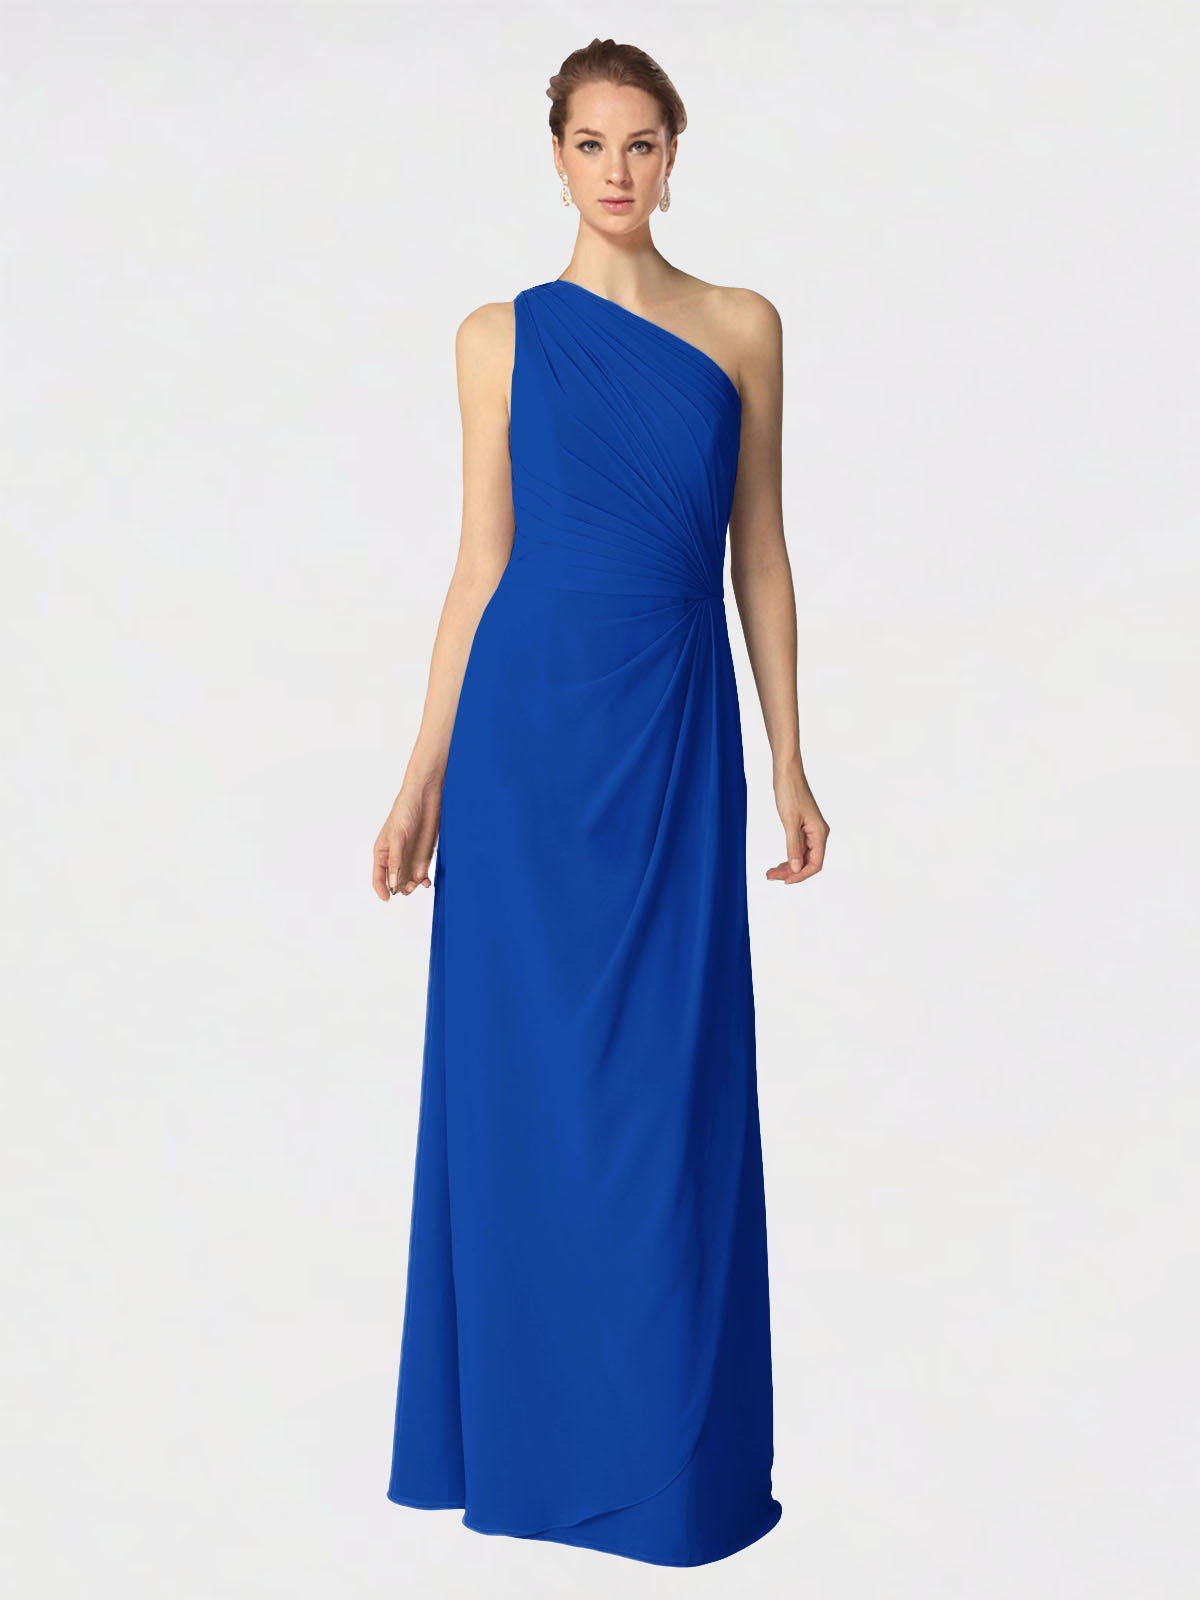 Long A-Line One Shoulder Sleeveless Royal Blue Chiffon Bridesmaid Dress Aurora